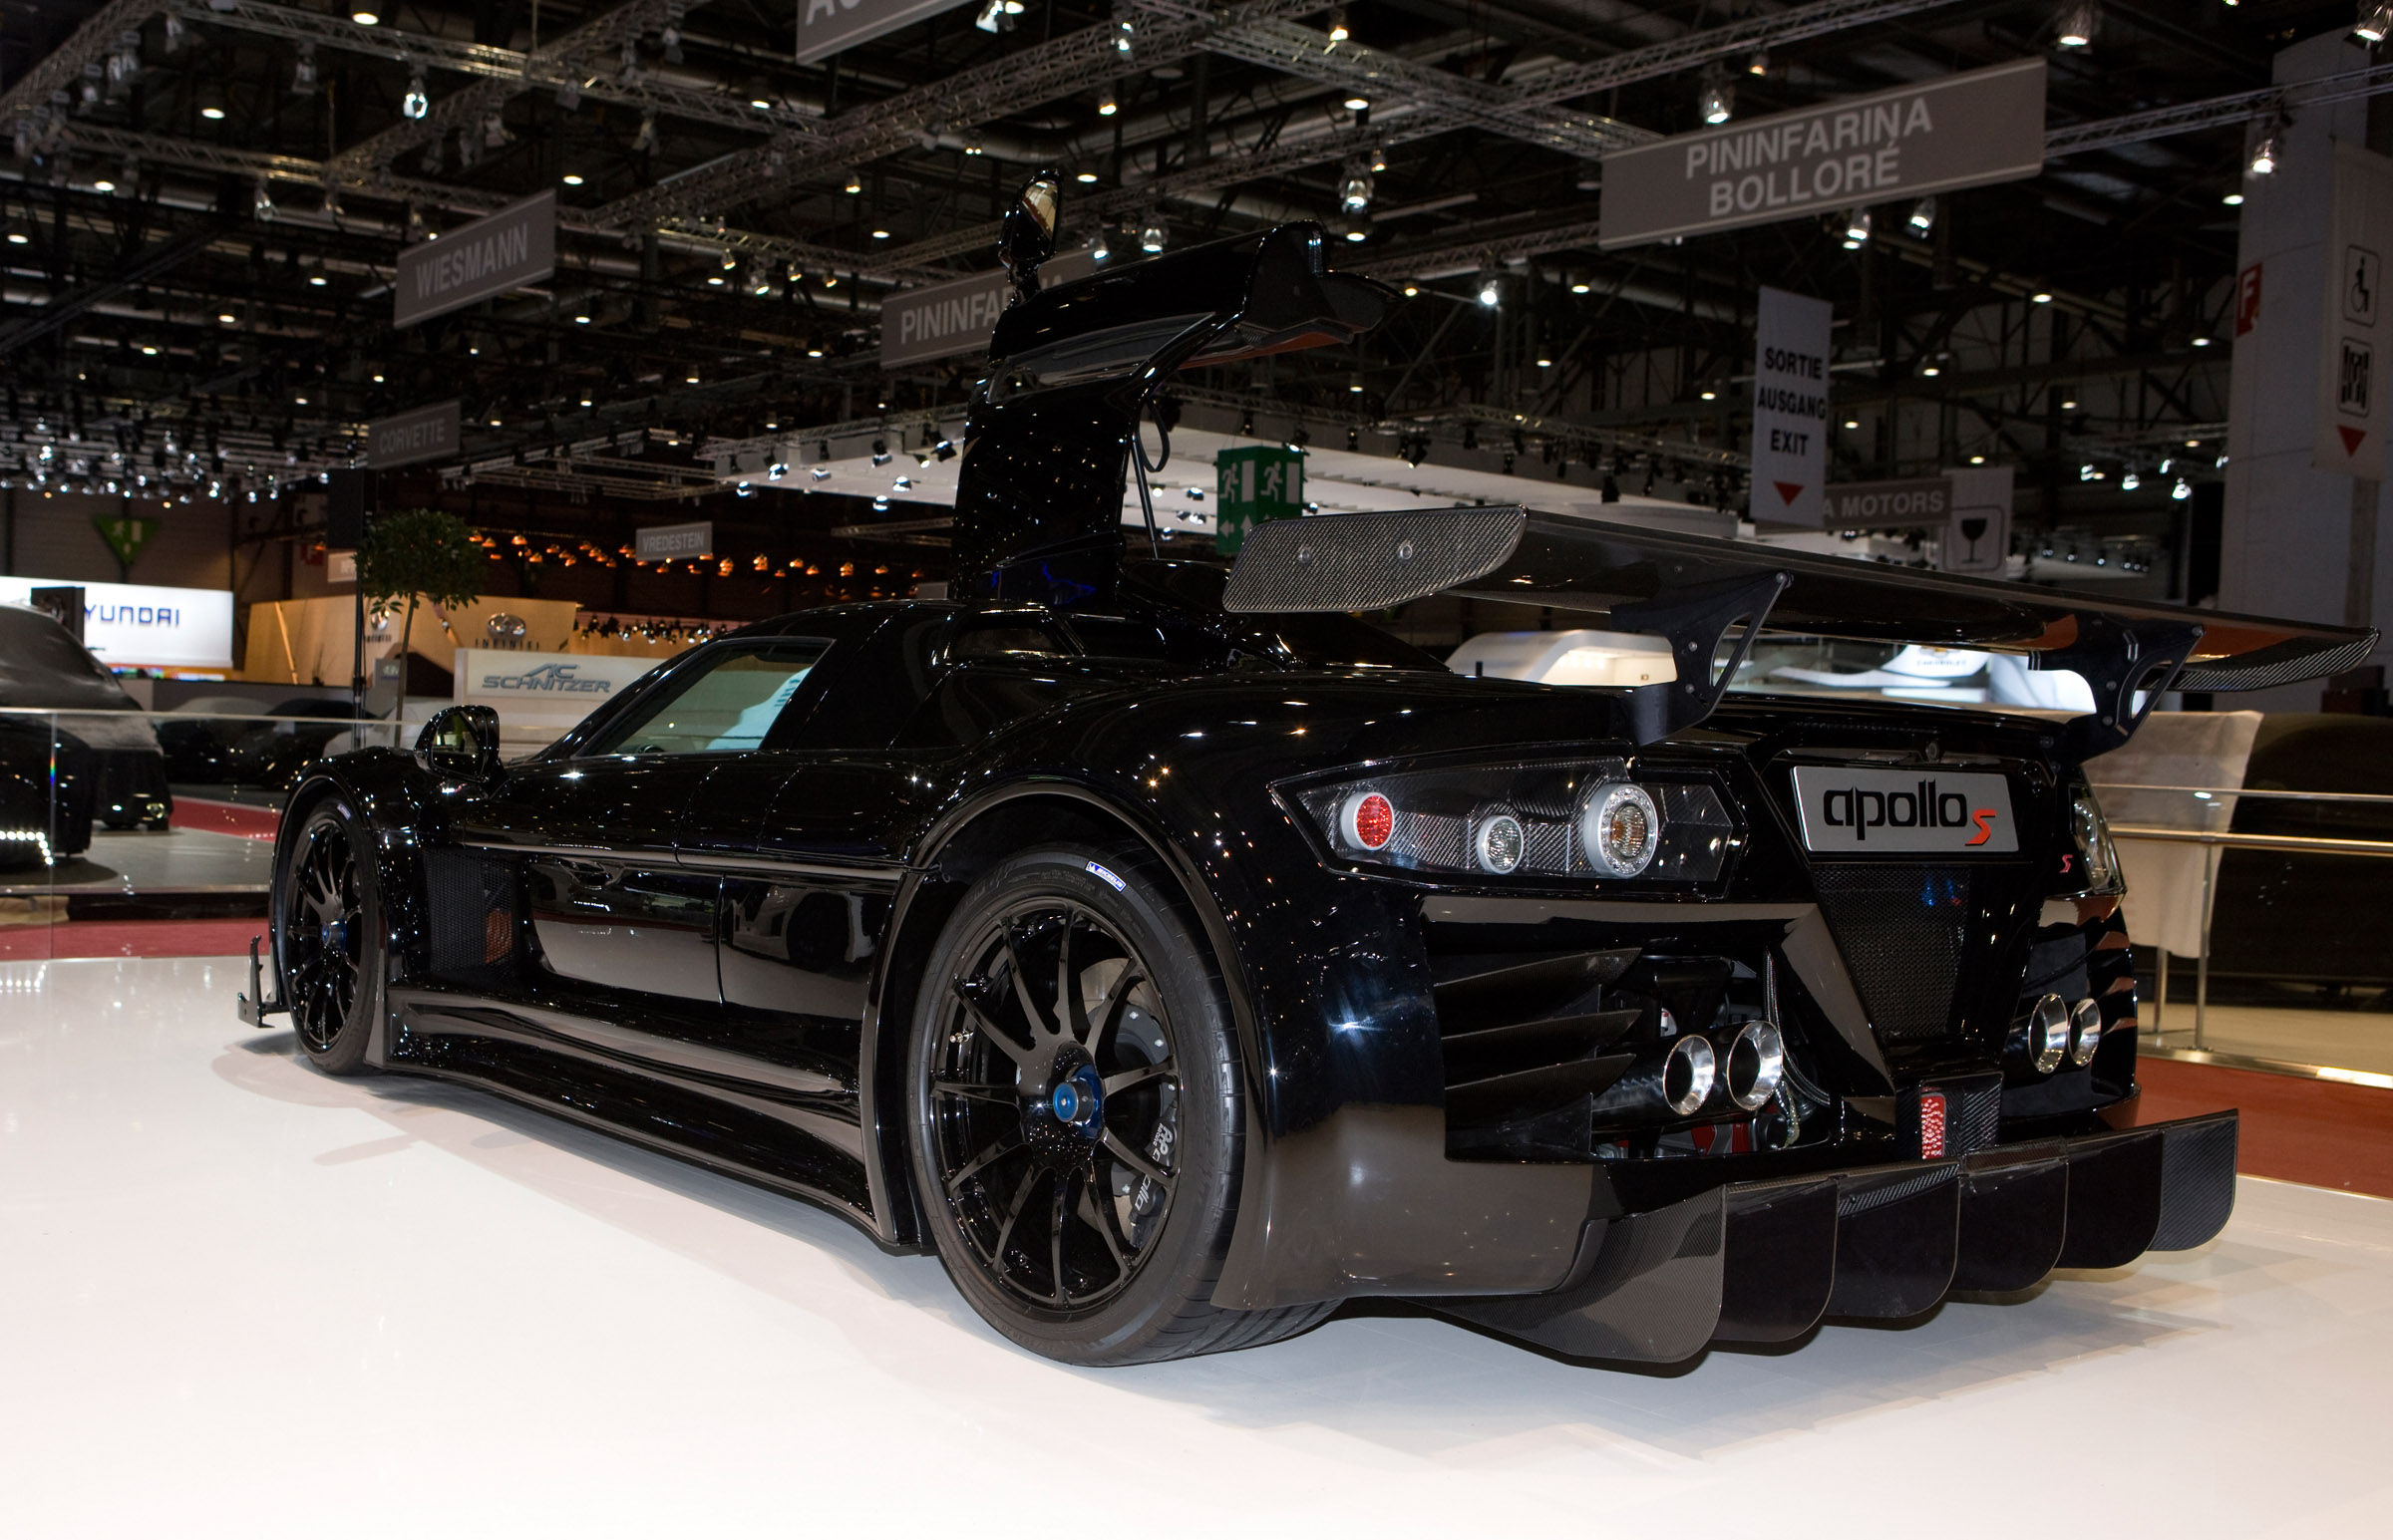 Gumpert apollo photo - 2